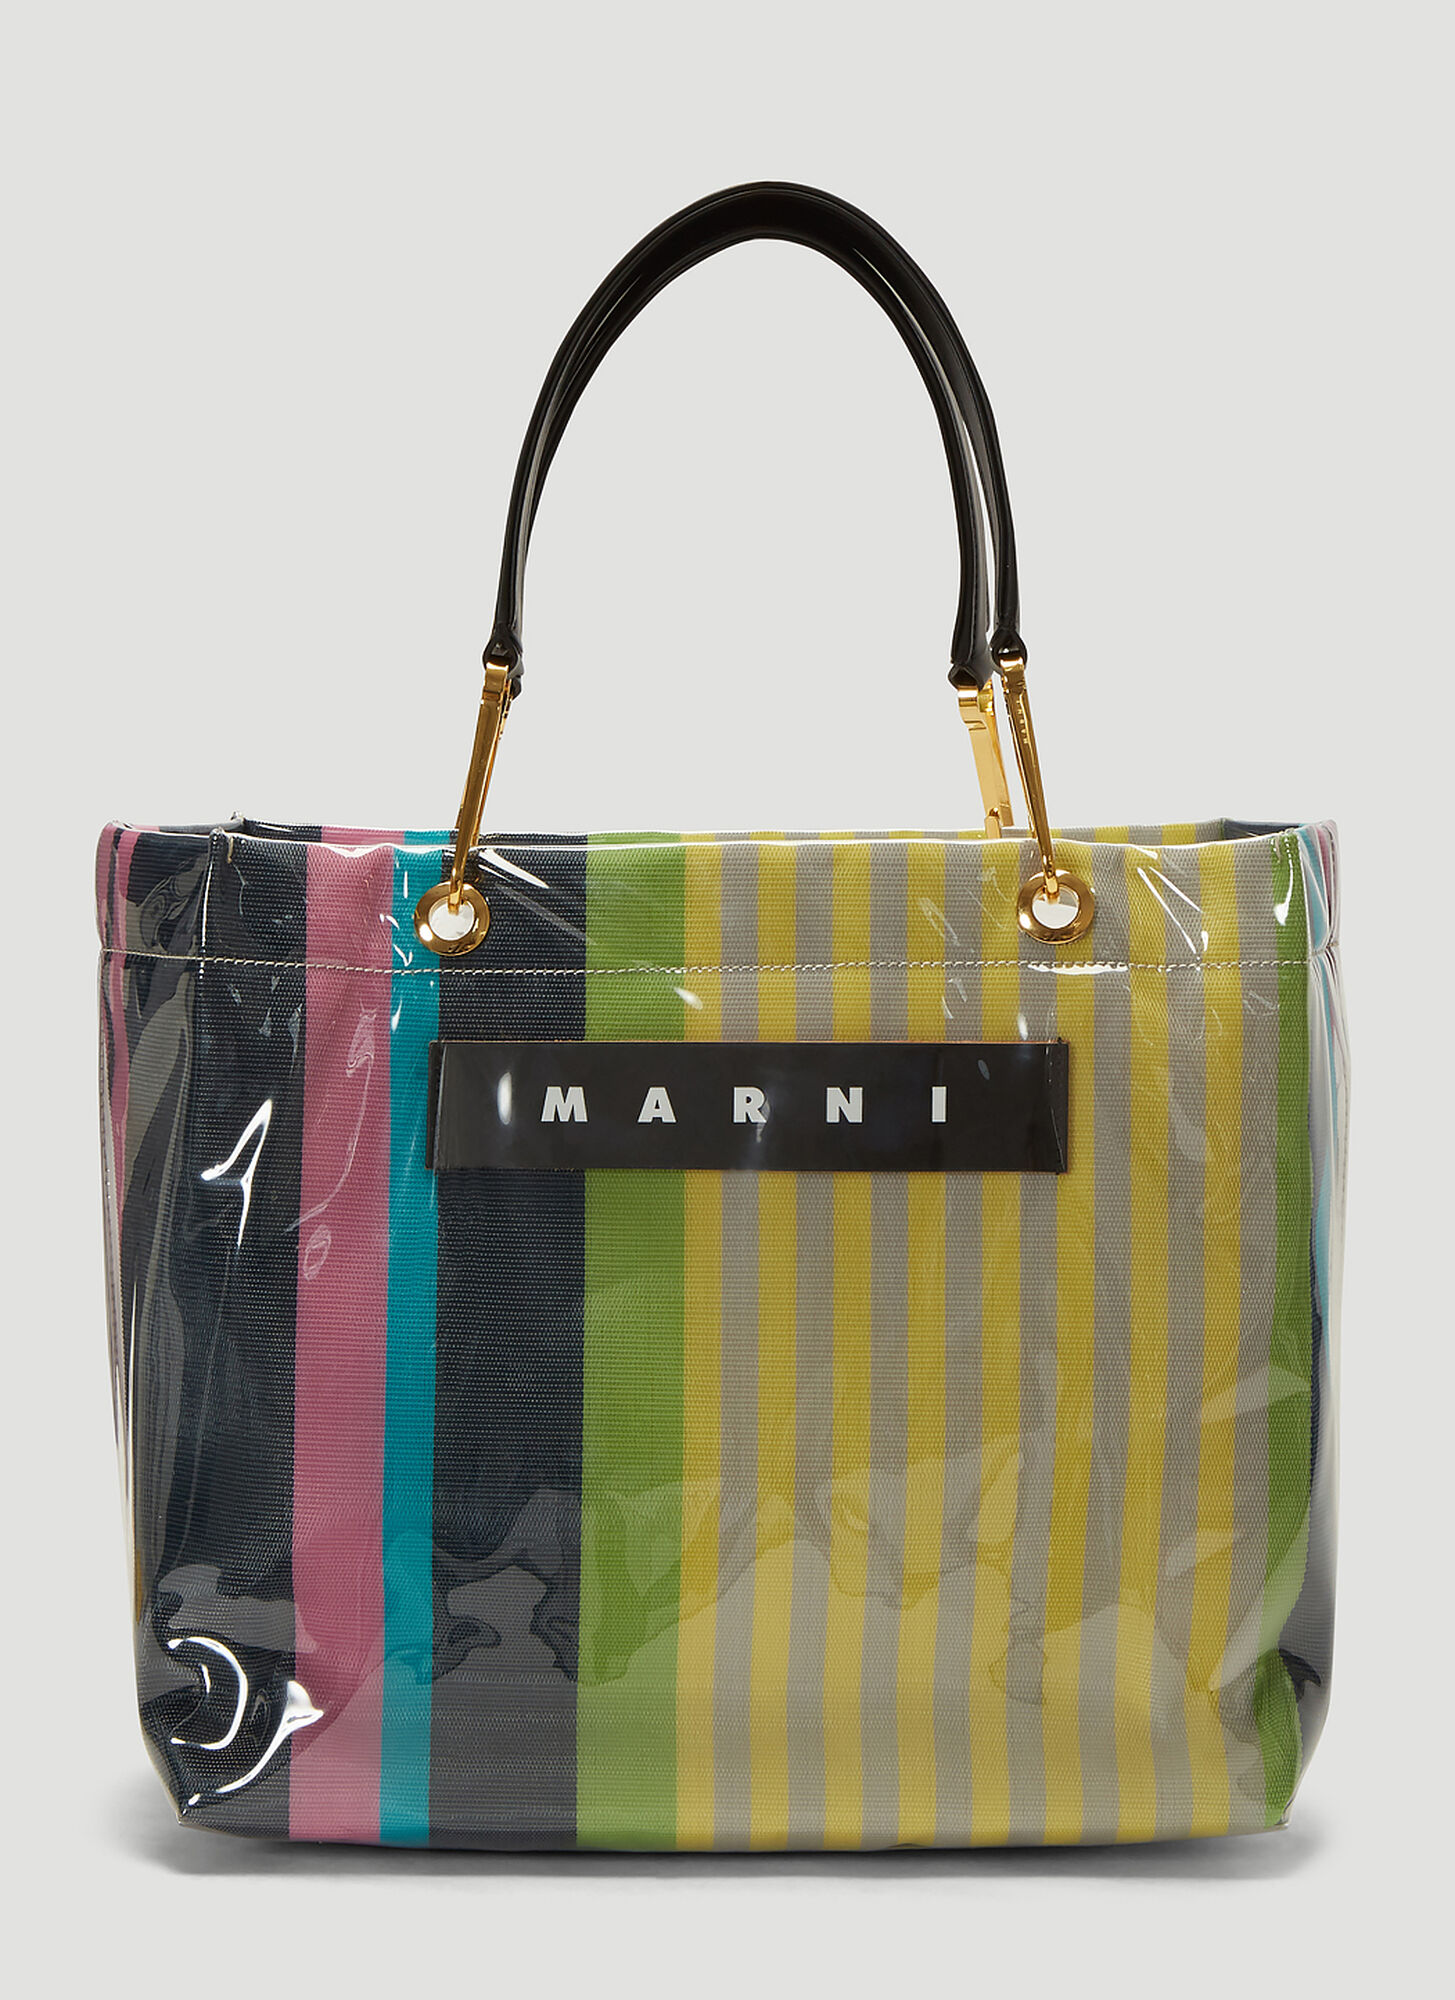 Marni Glossy Grip Medium Tote Bag in Yellow